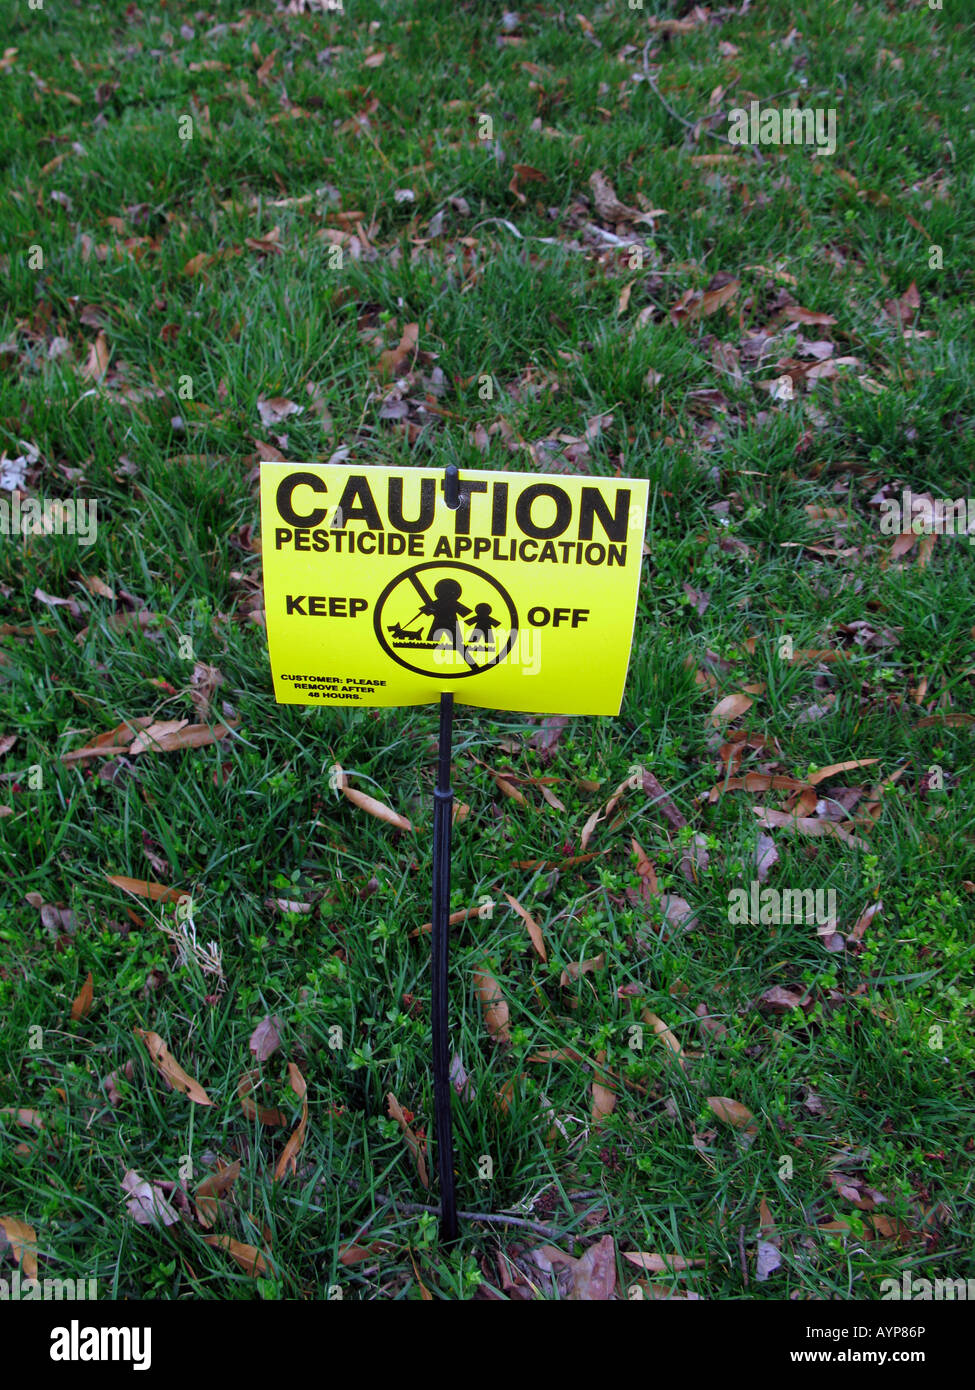 Pesticide warning on lawn, Washington DC, USA - Stock Image